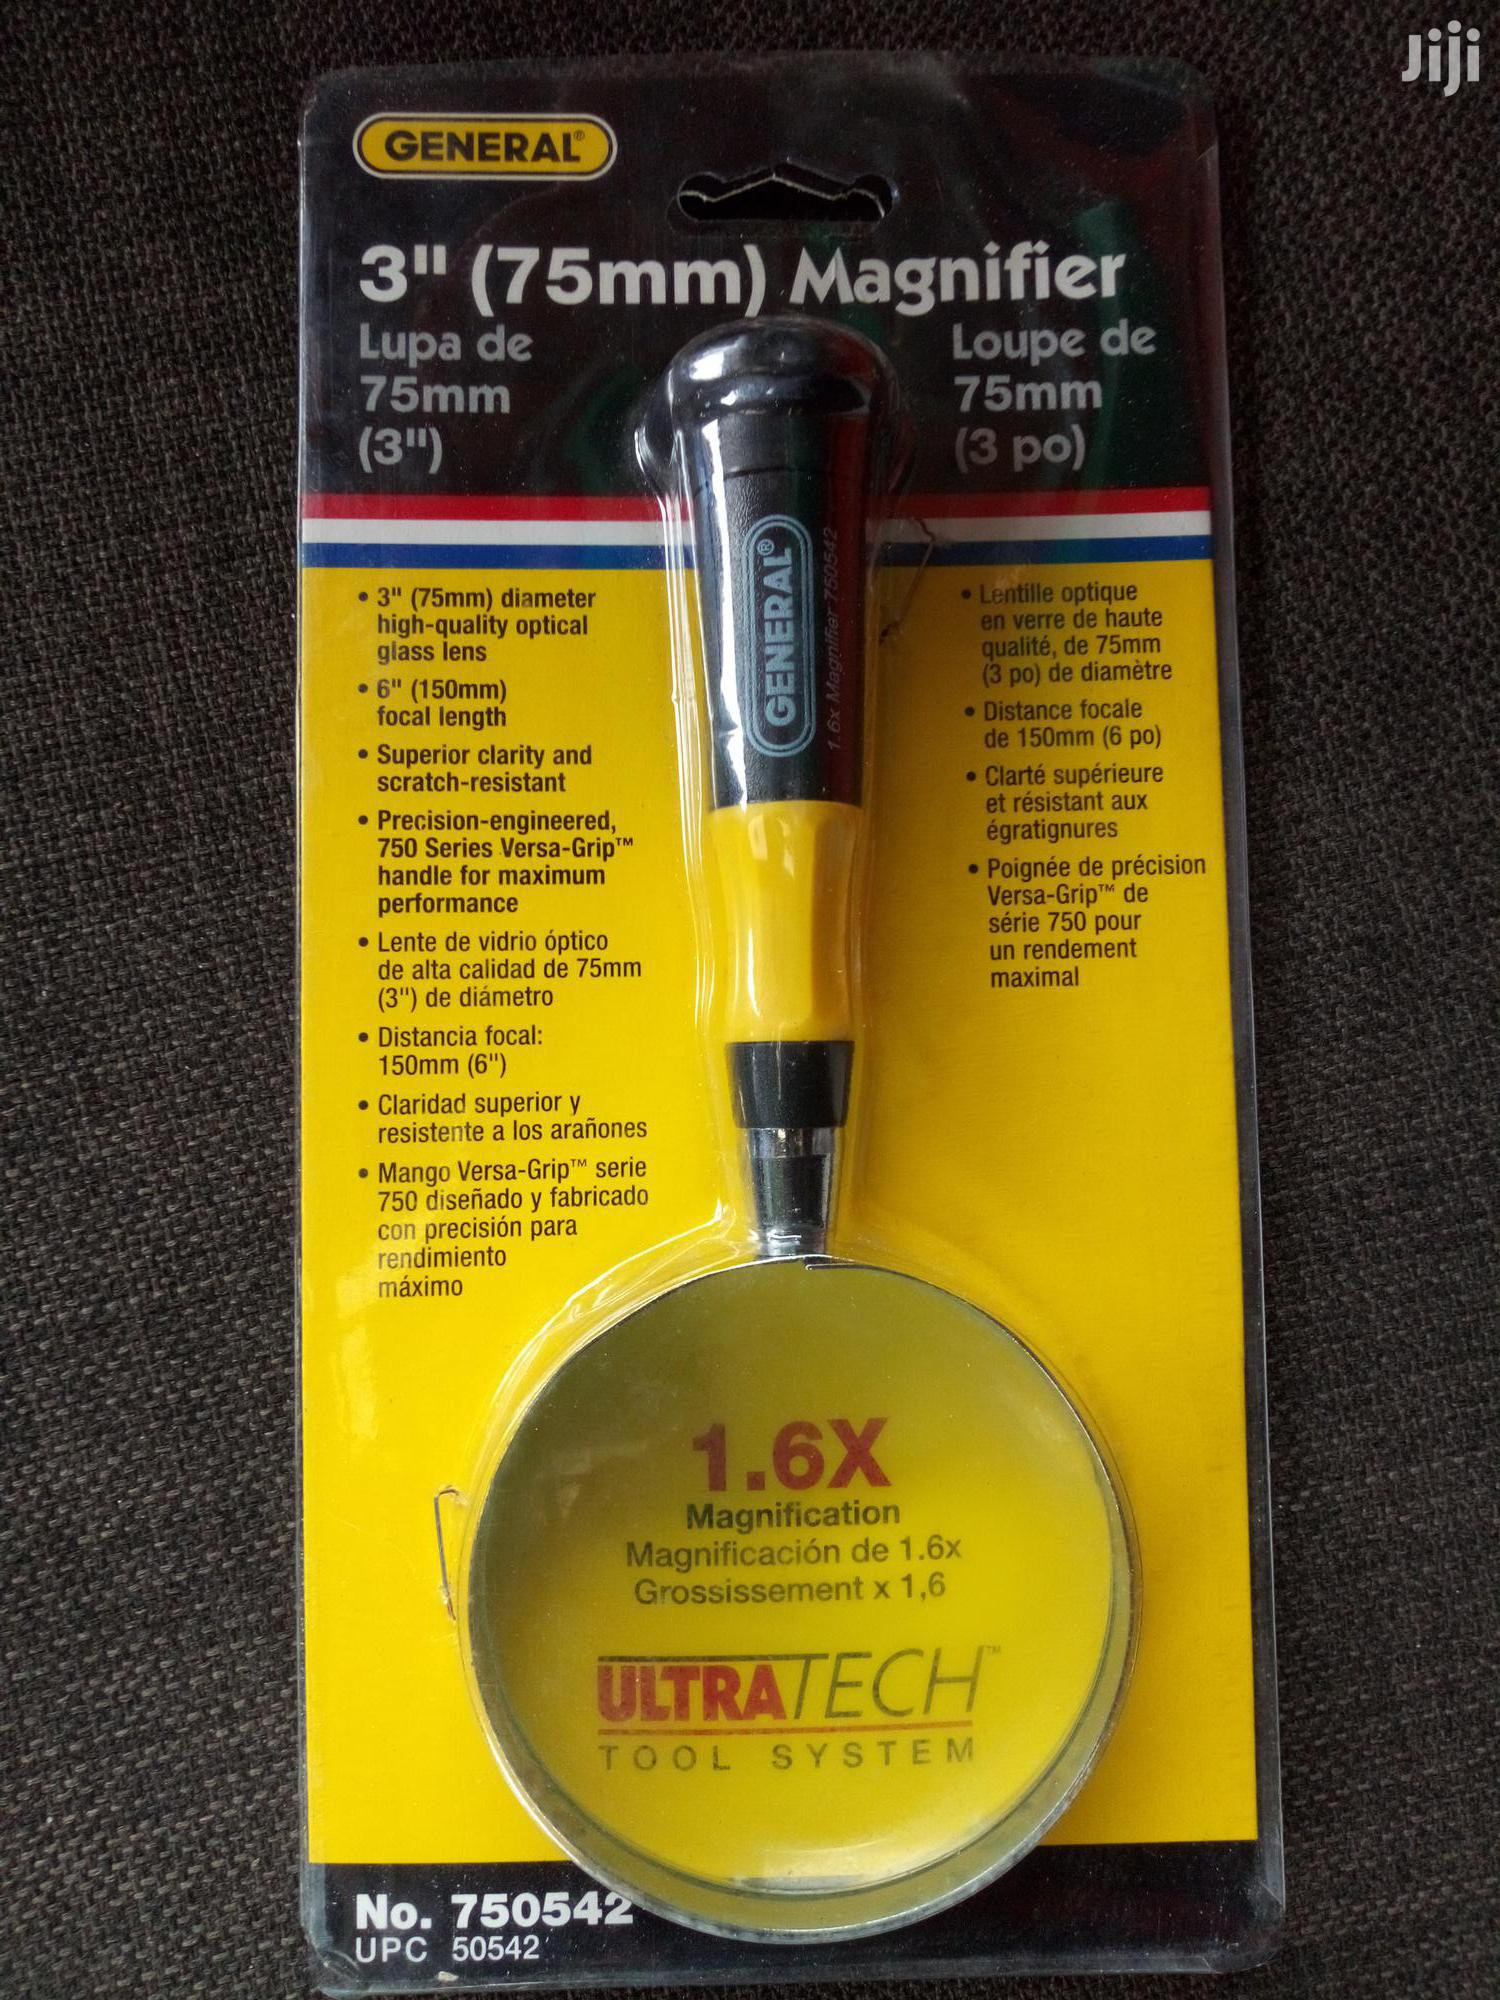 General Tools 750542 Glass Magnifier, 3-inch